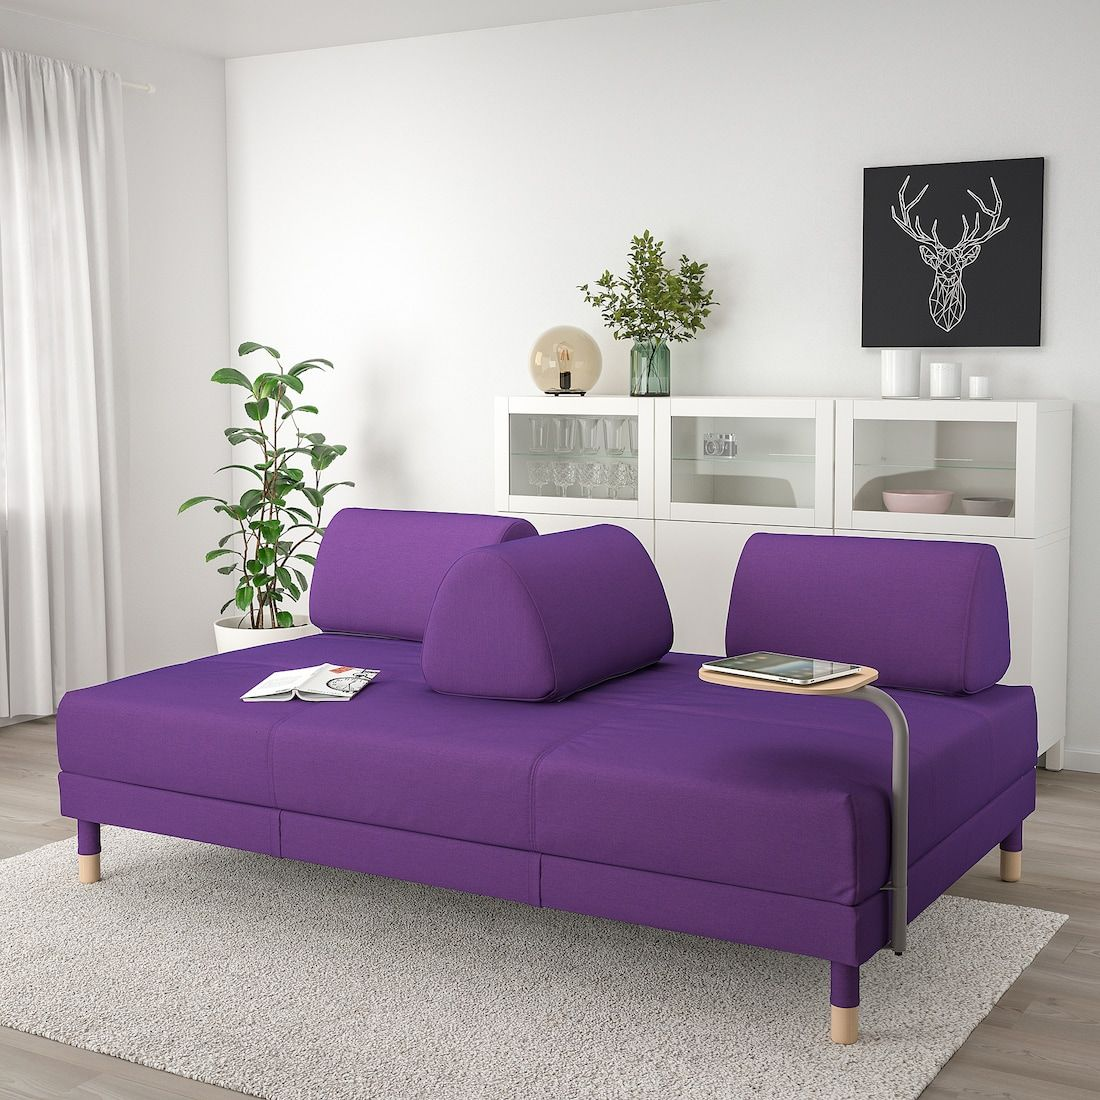 Flottebo Sleeper Sofa With Side Table Vissle Purple 47 1 4 Sleeper Sofa Sofa Sleeper Sofa Mattress